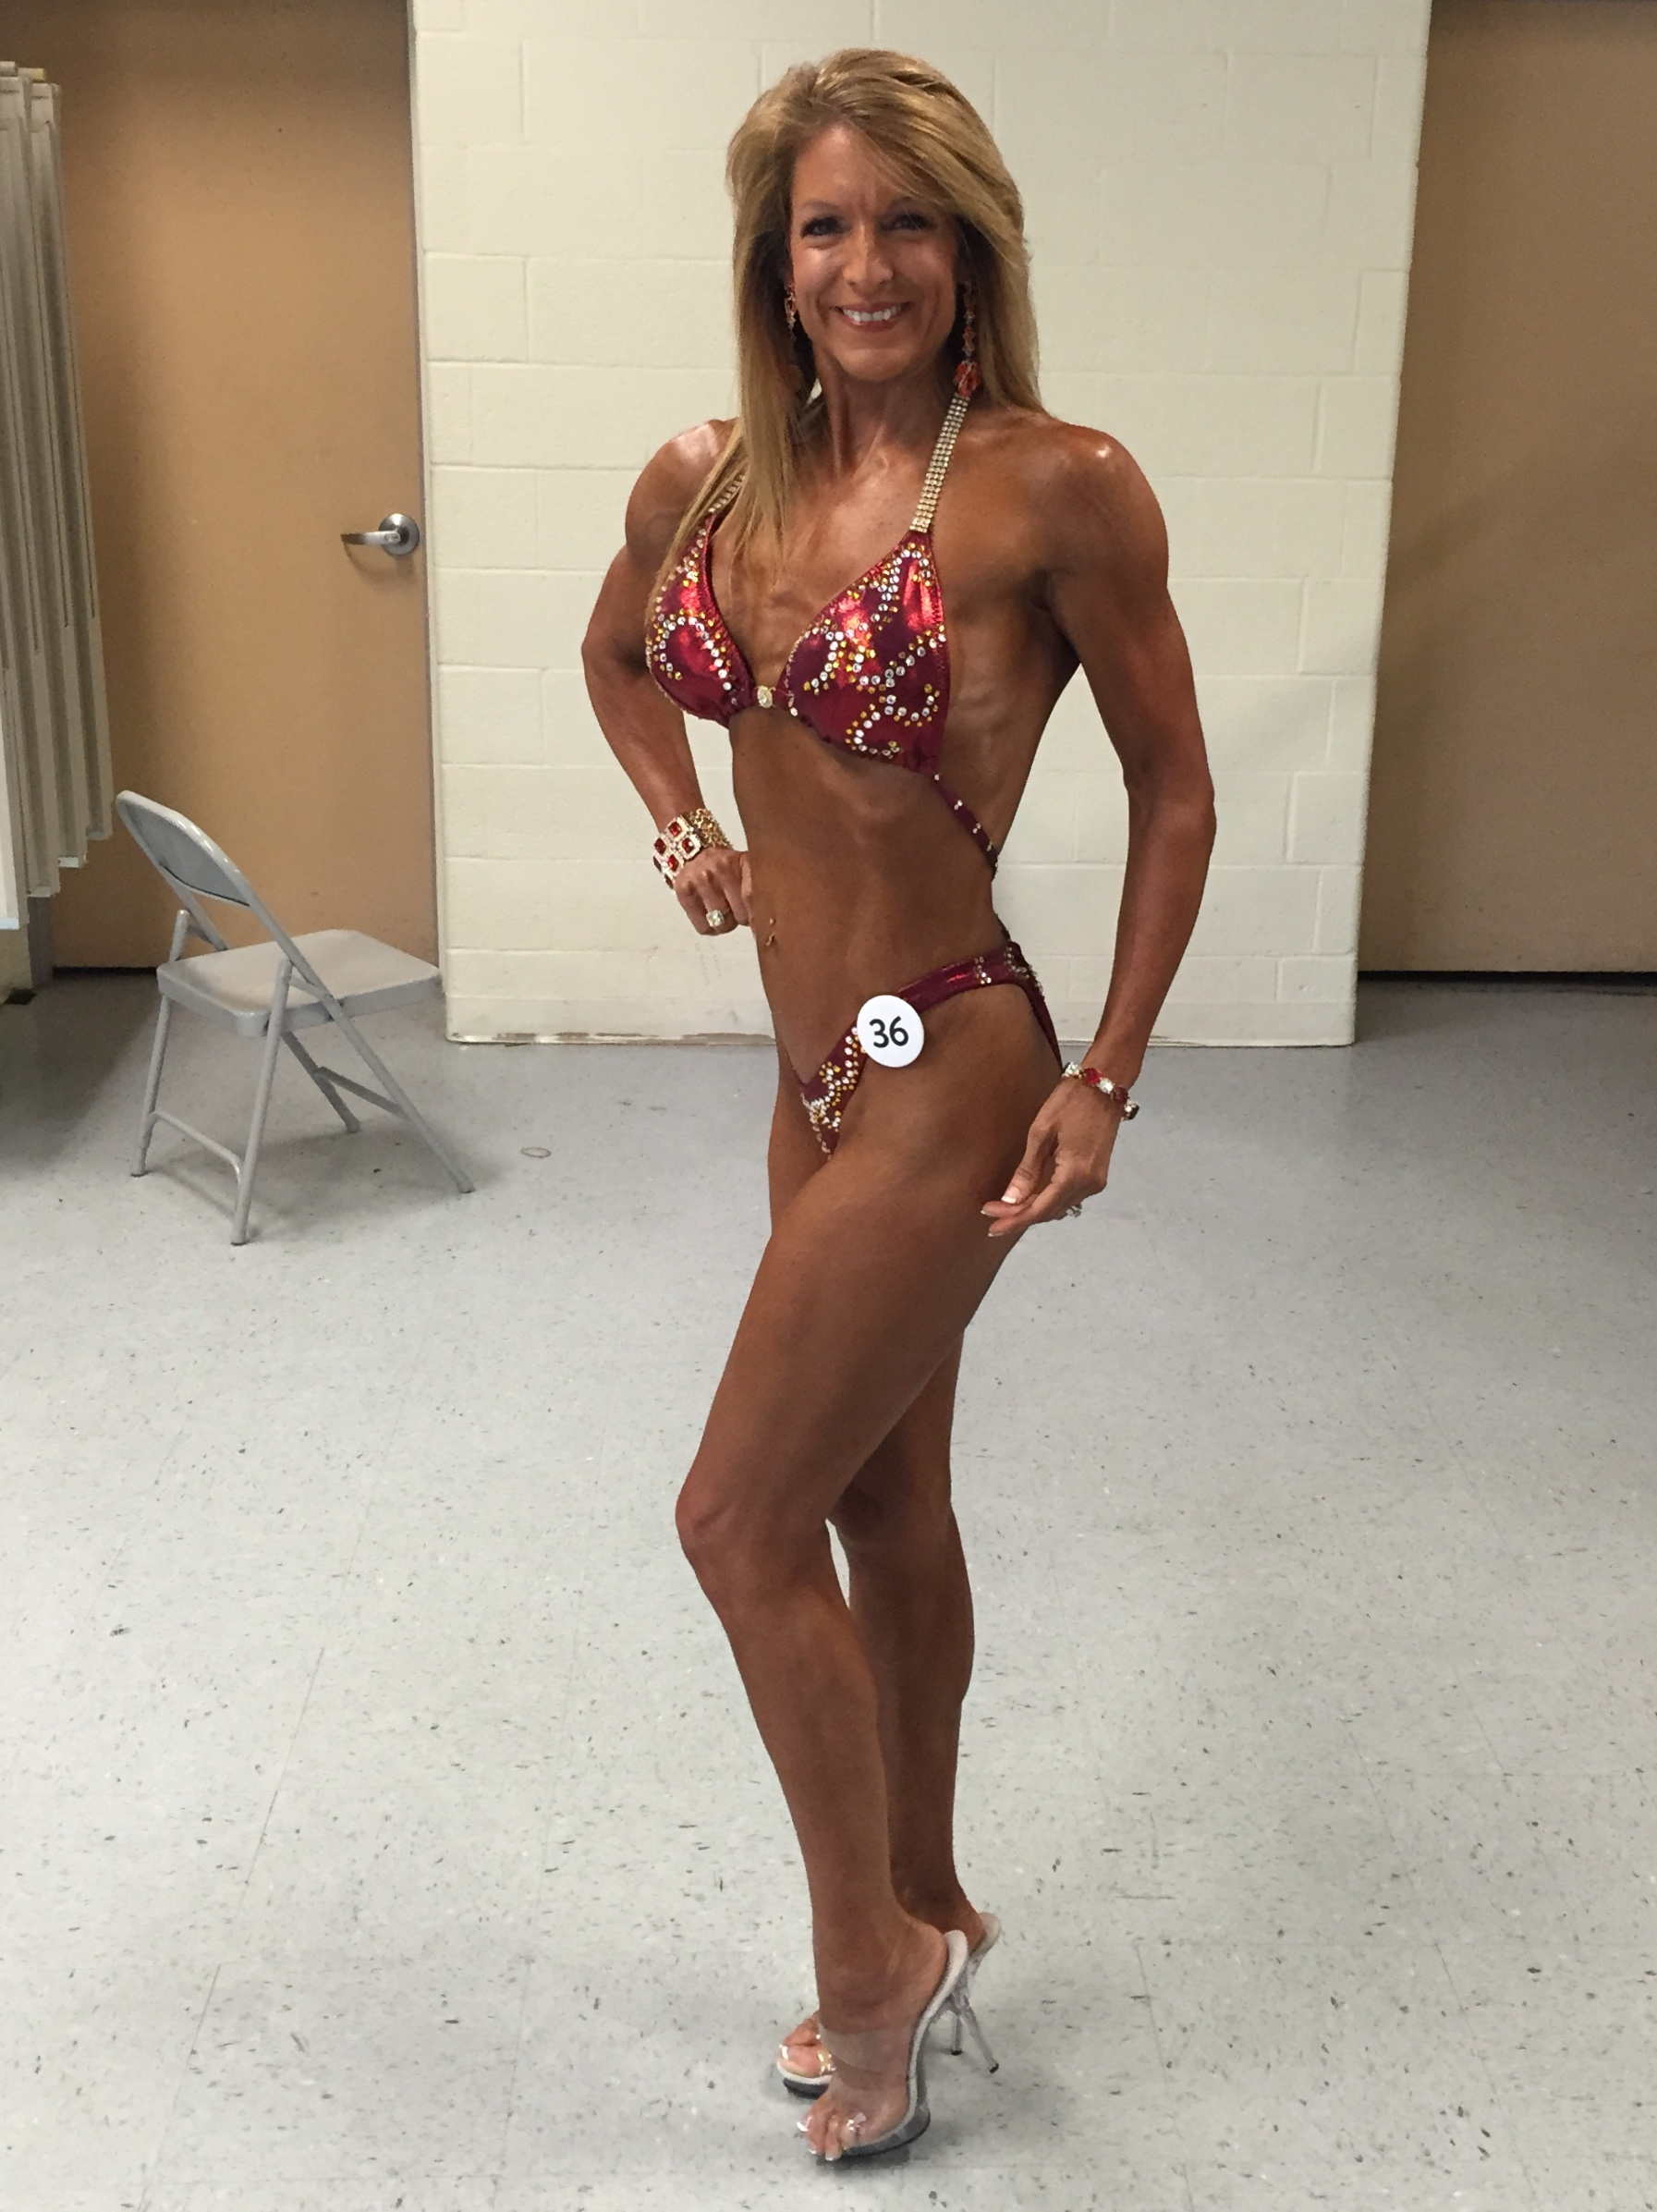 samantha bowman competition figure